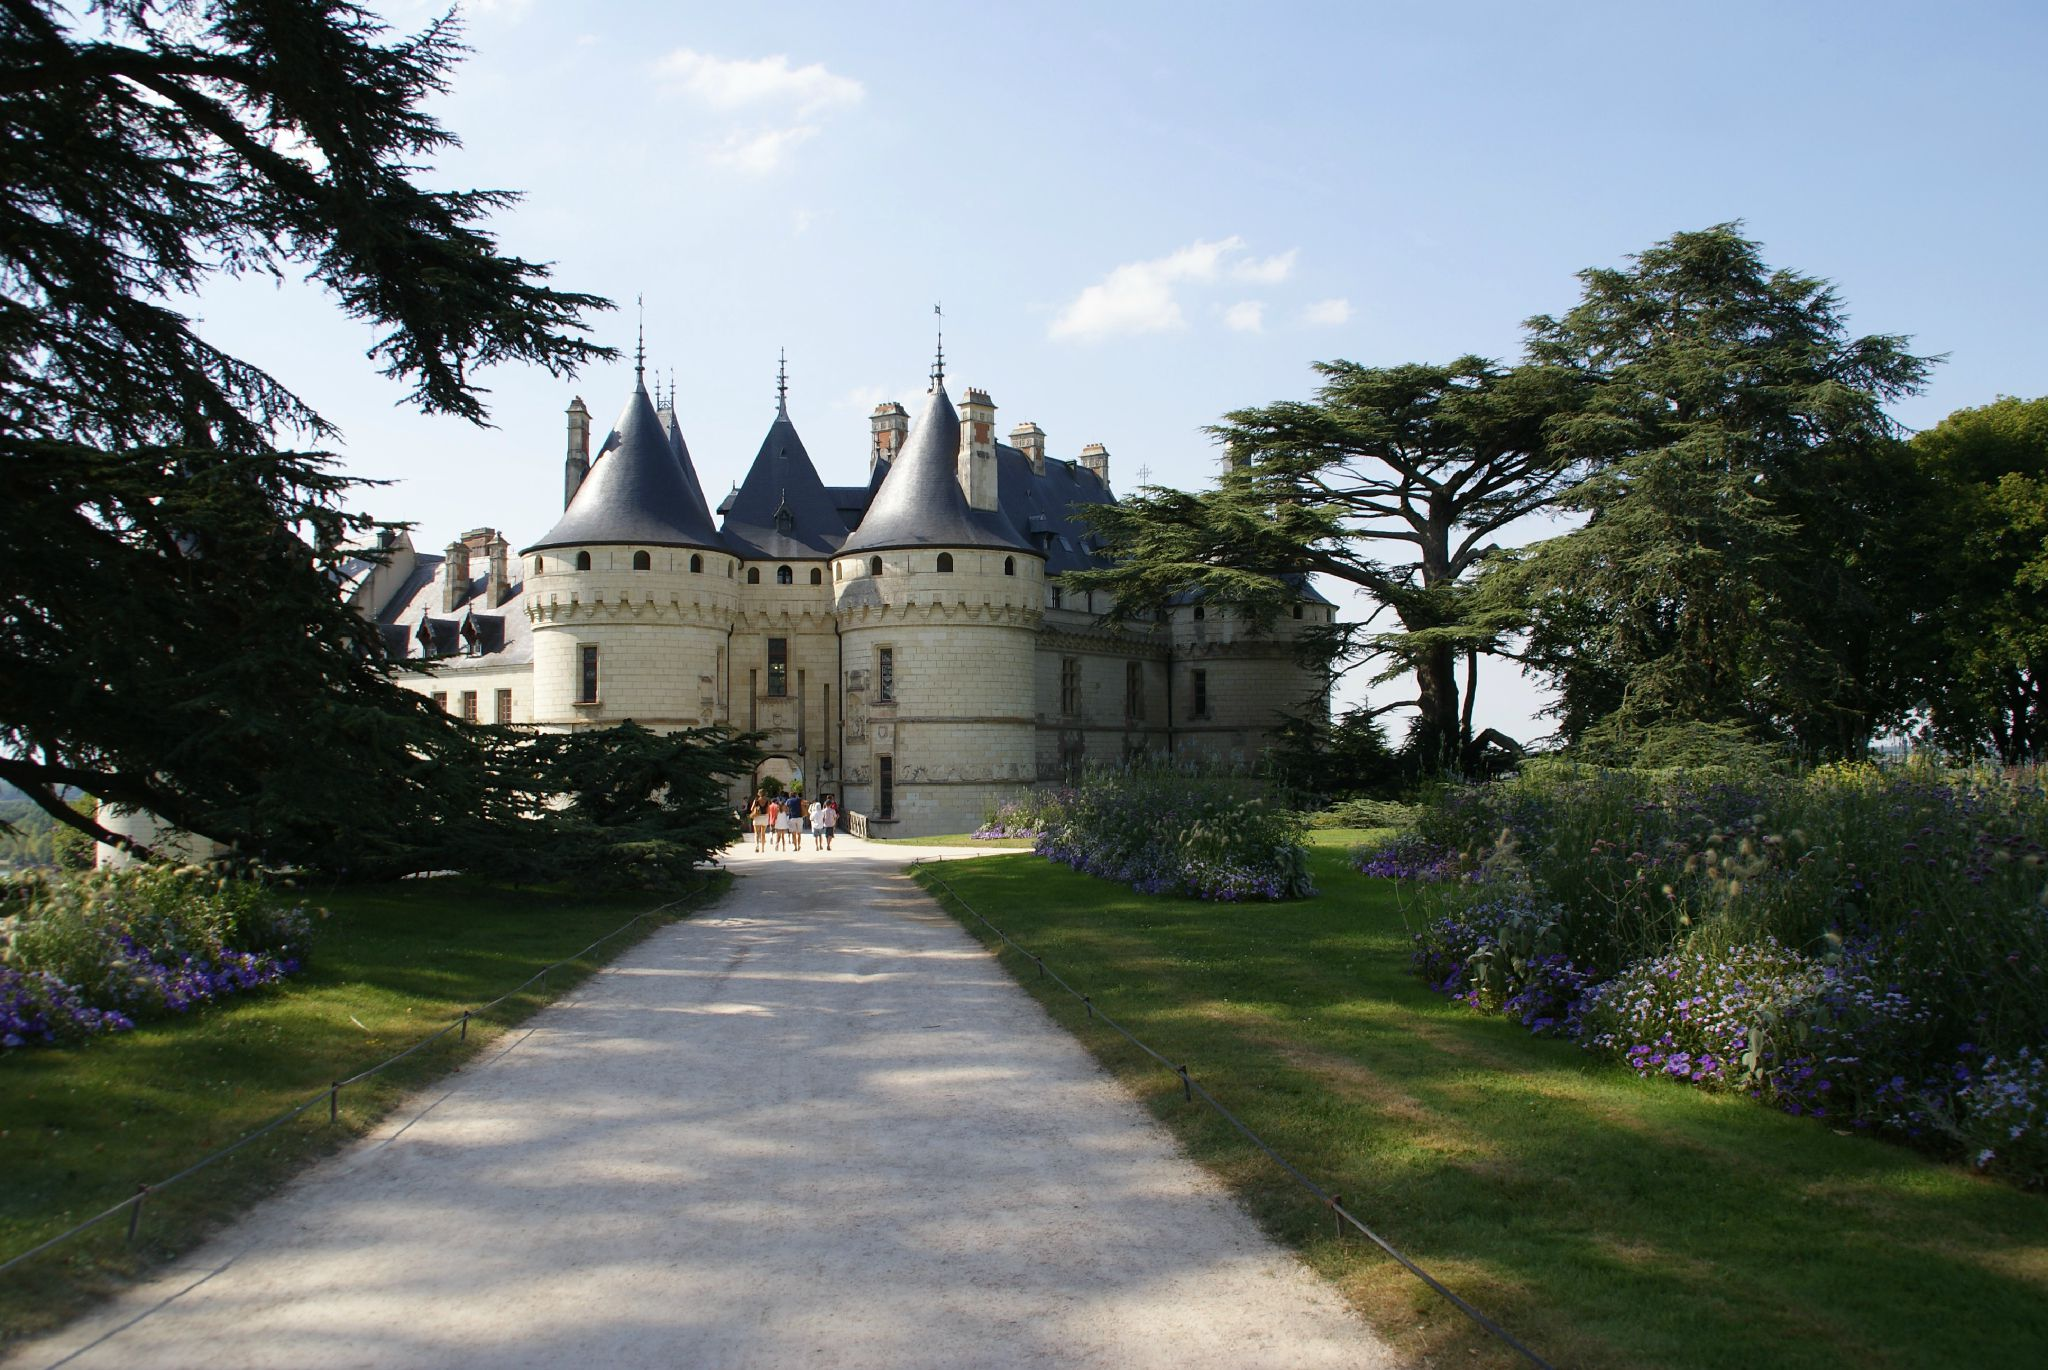 chaumont sur loire ou le plaisir de s merveiller val rie del photographies. Black Bedroom Furniture Sets. Home Design Ideas